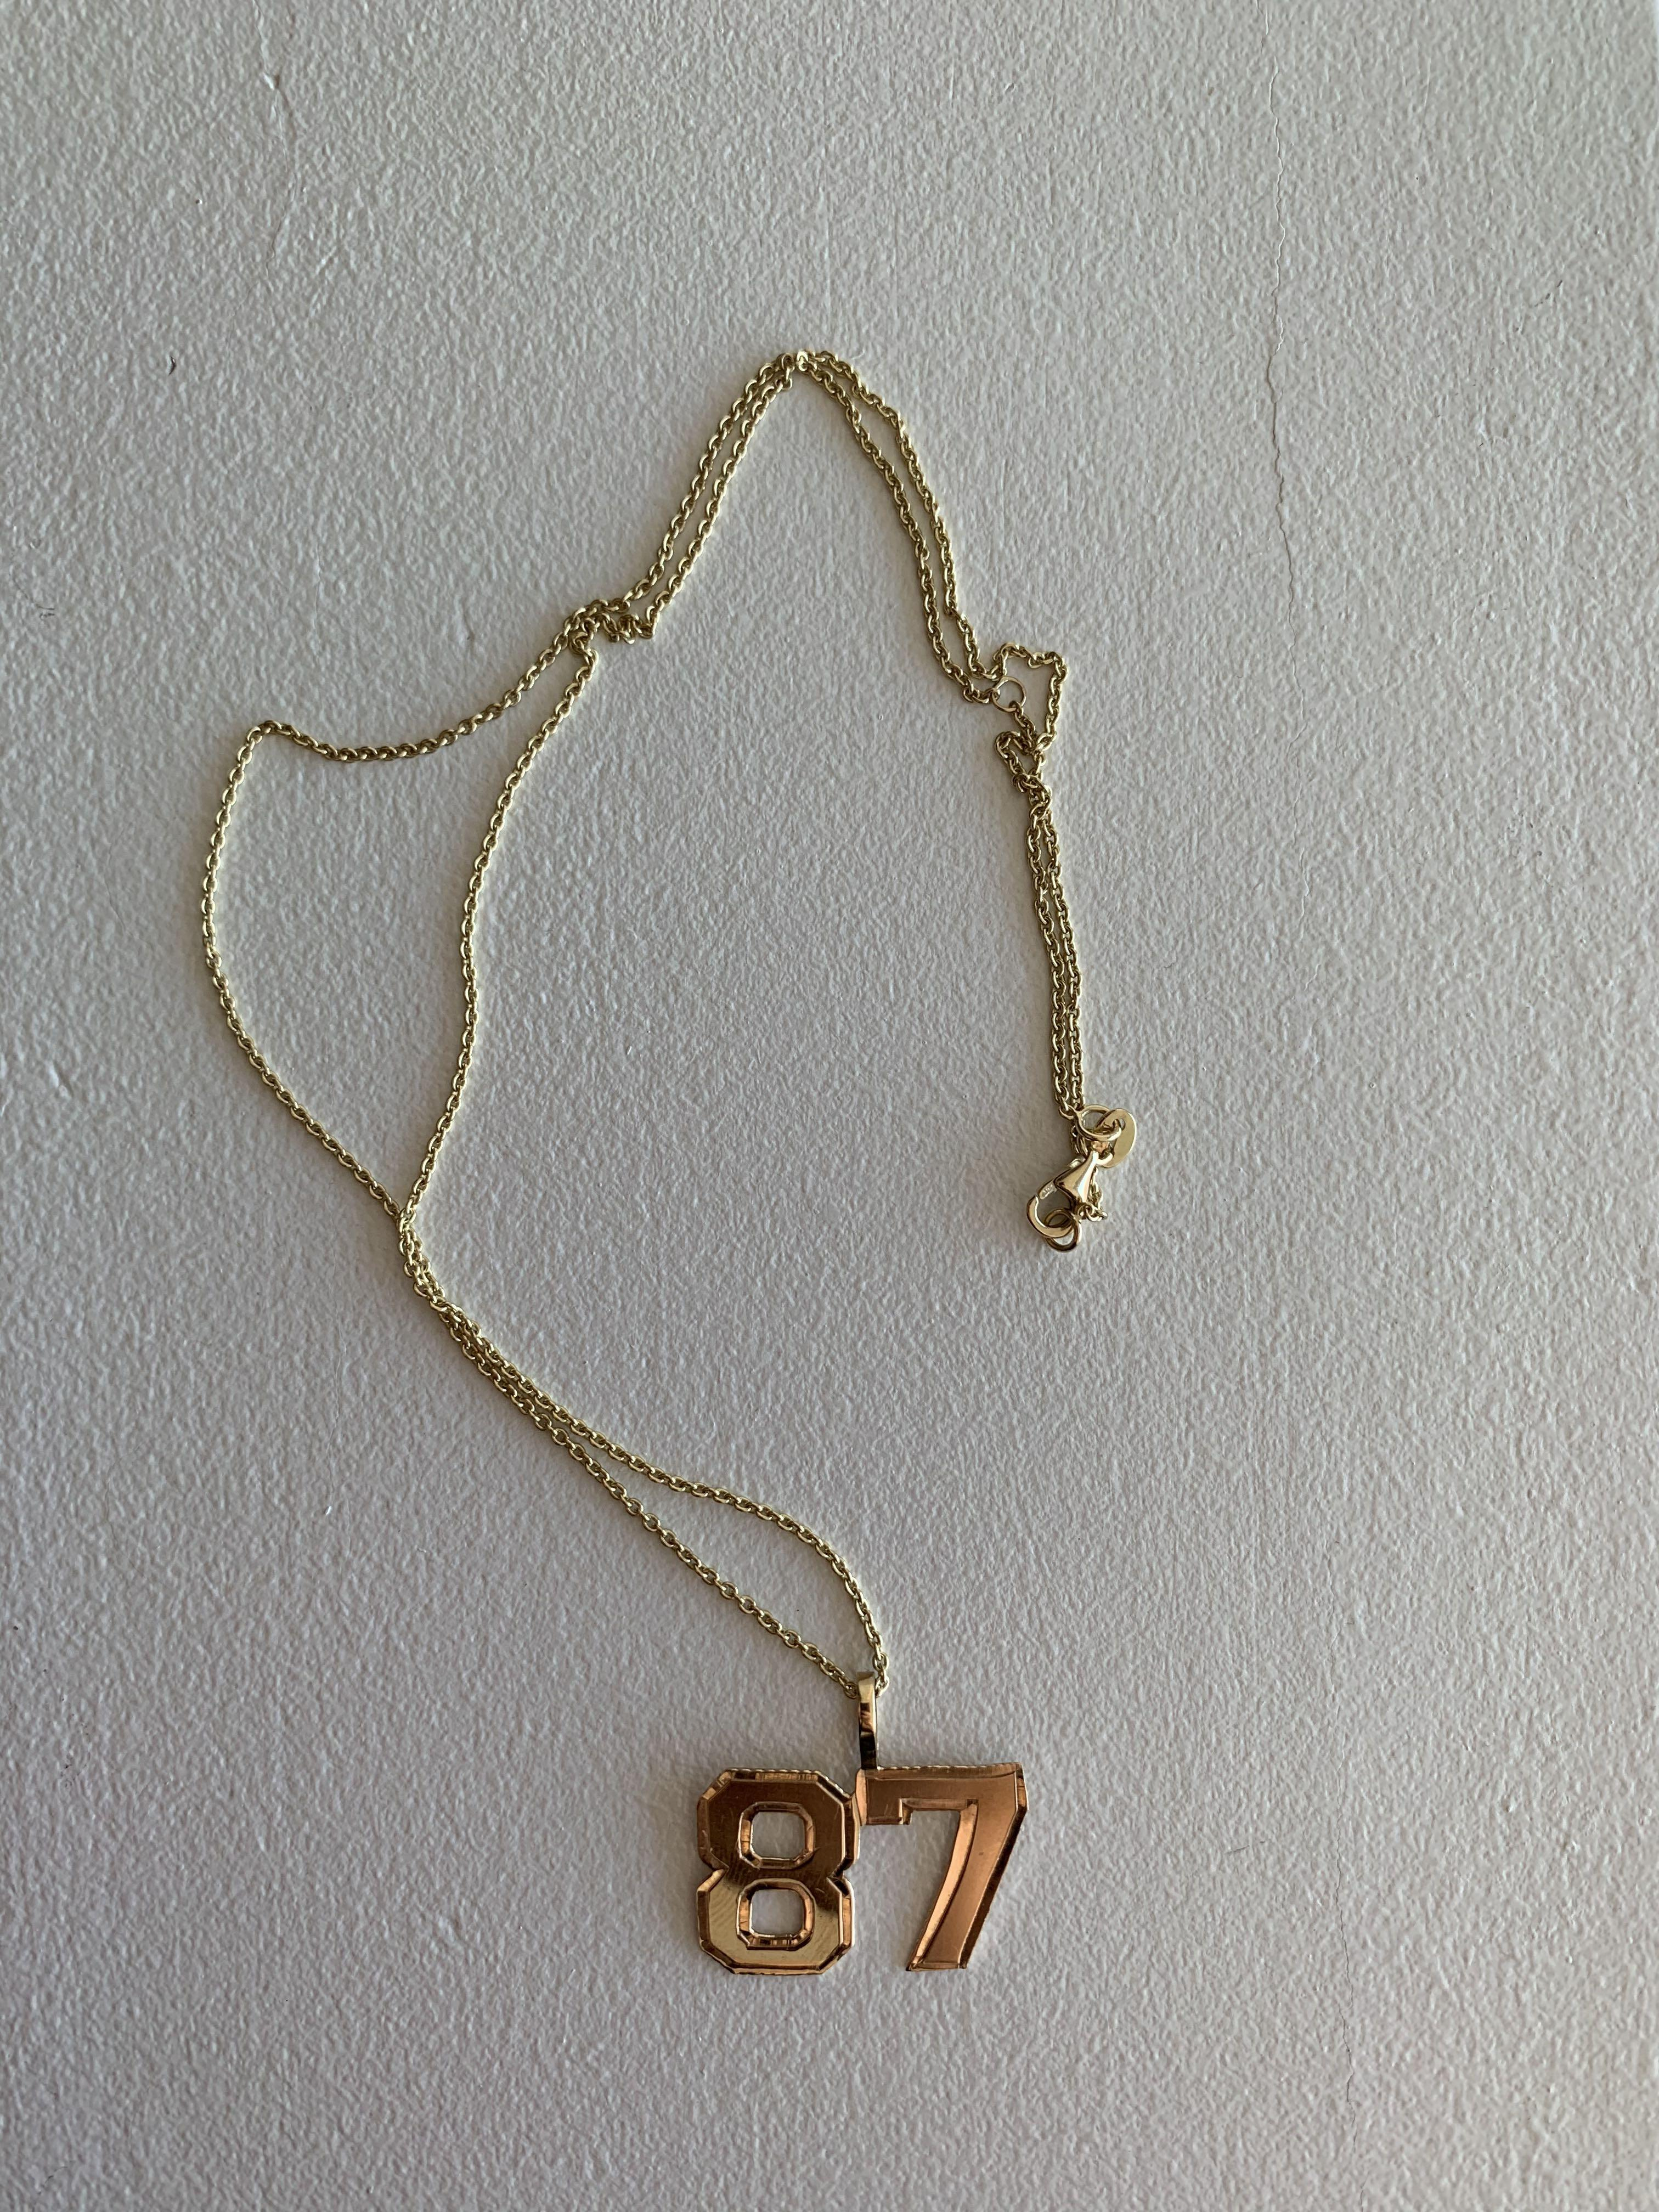 The M Jewelers necklace 87